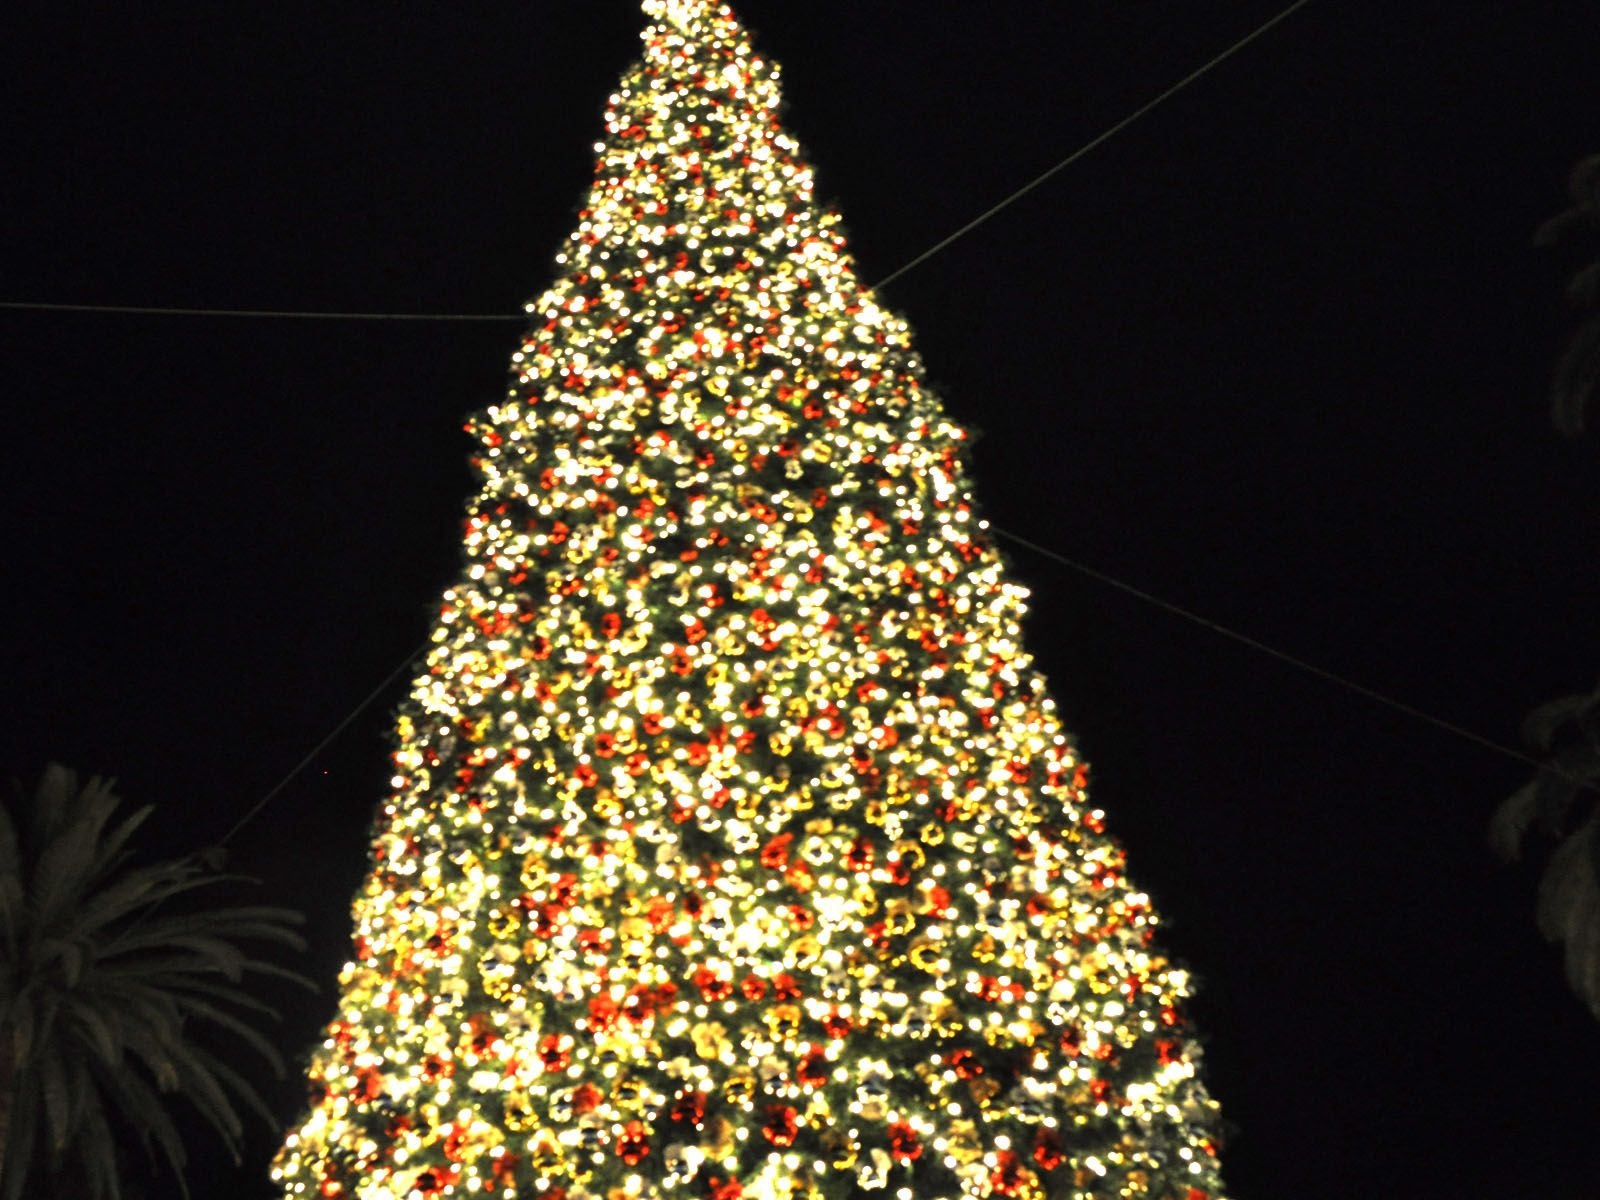 Greek Fisherman, City Grill & Meloncino: Giant Christmas Trees